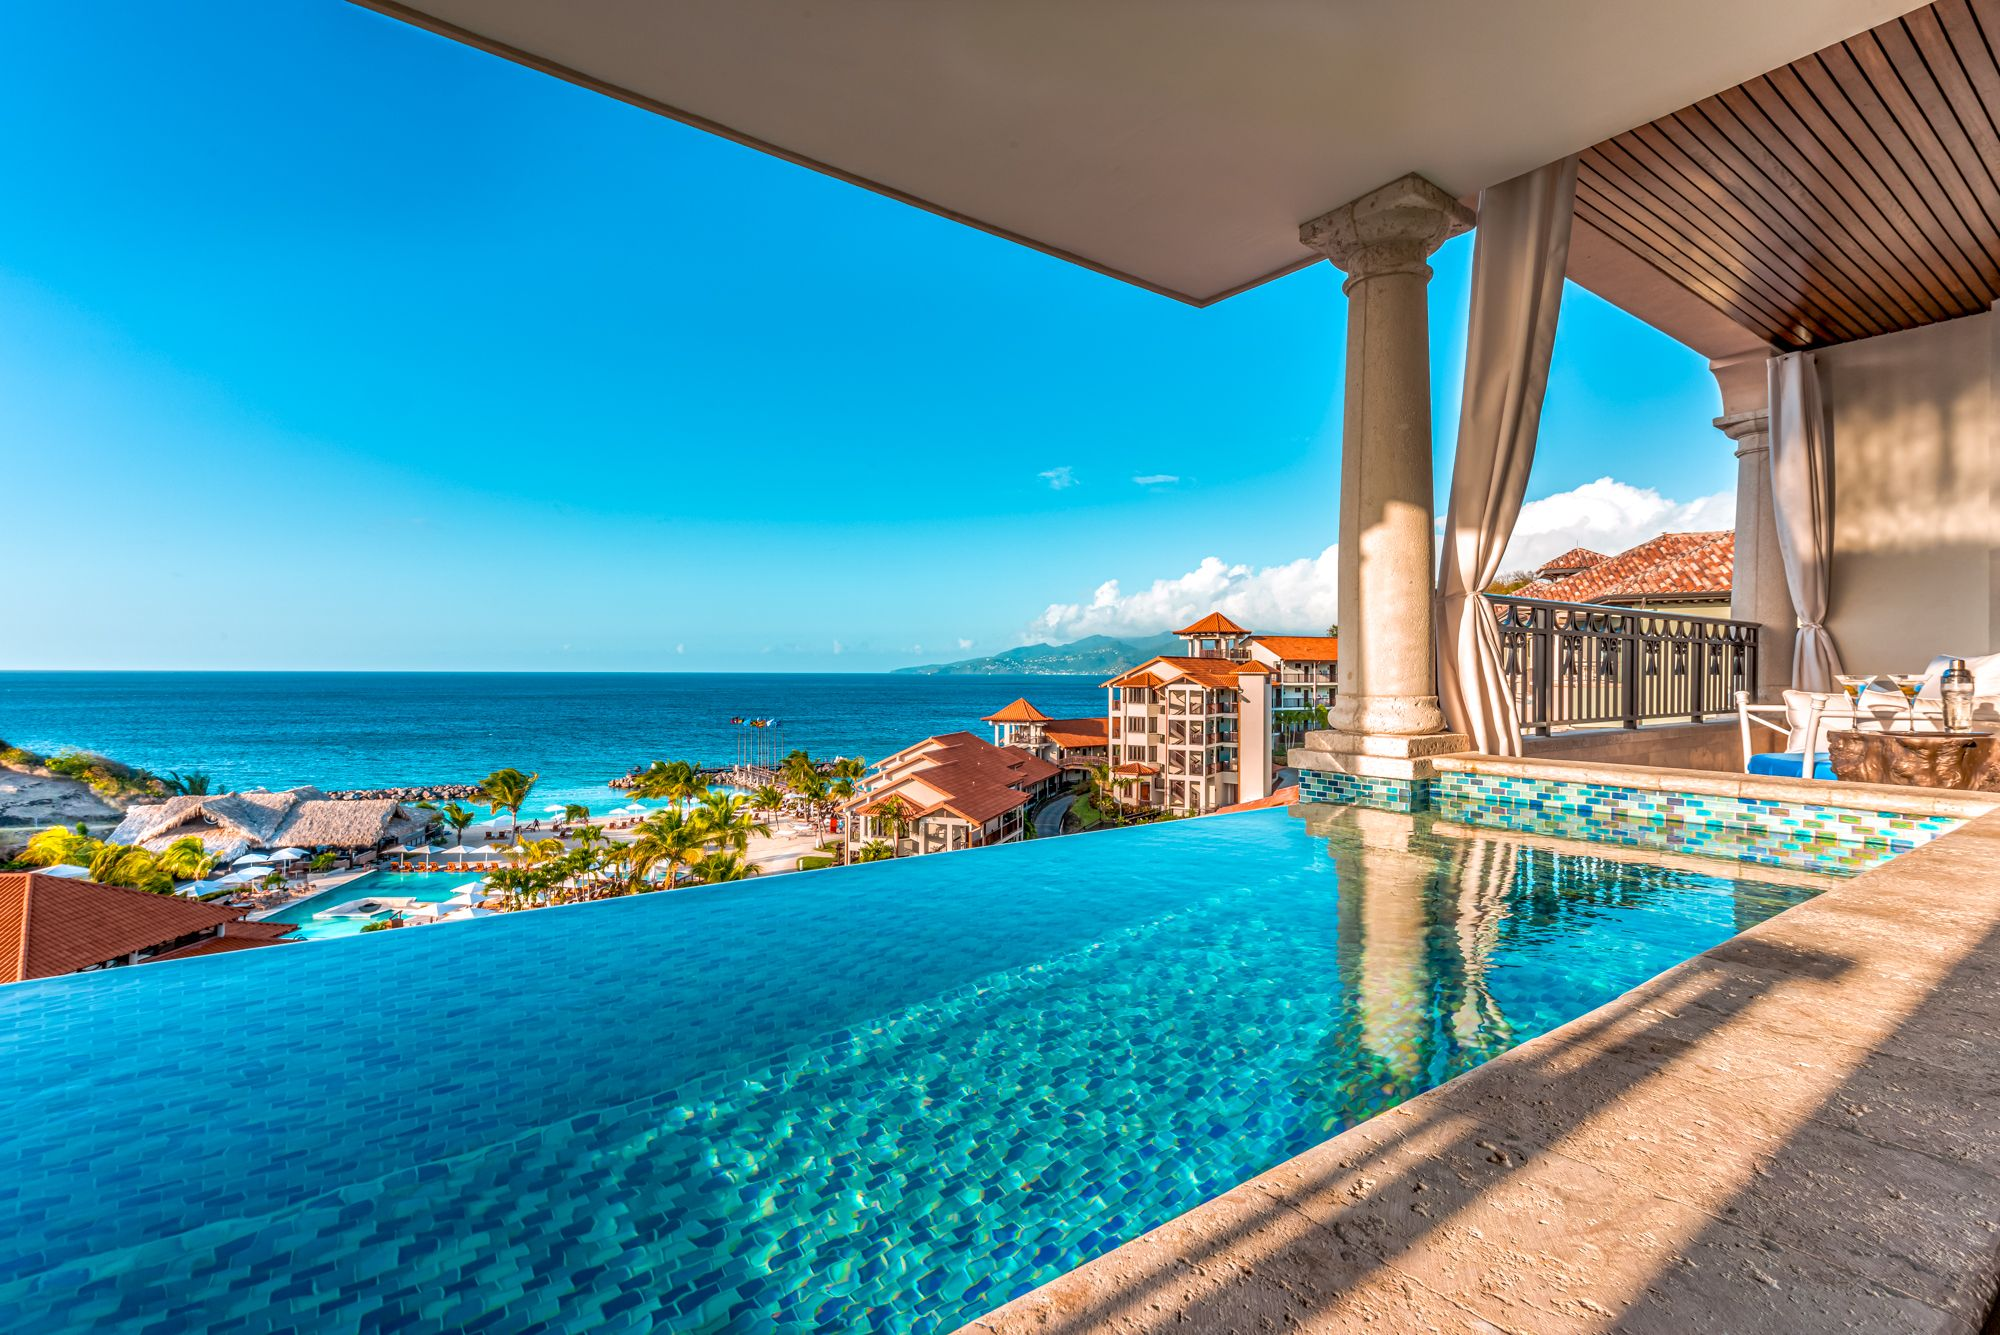 Sandals Grenada Skypool Suites View